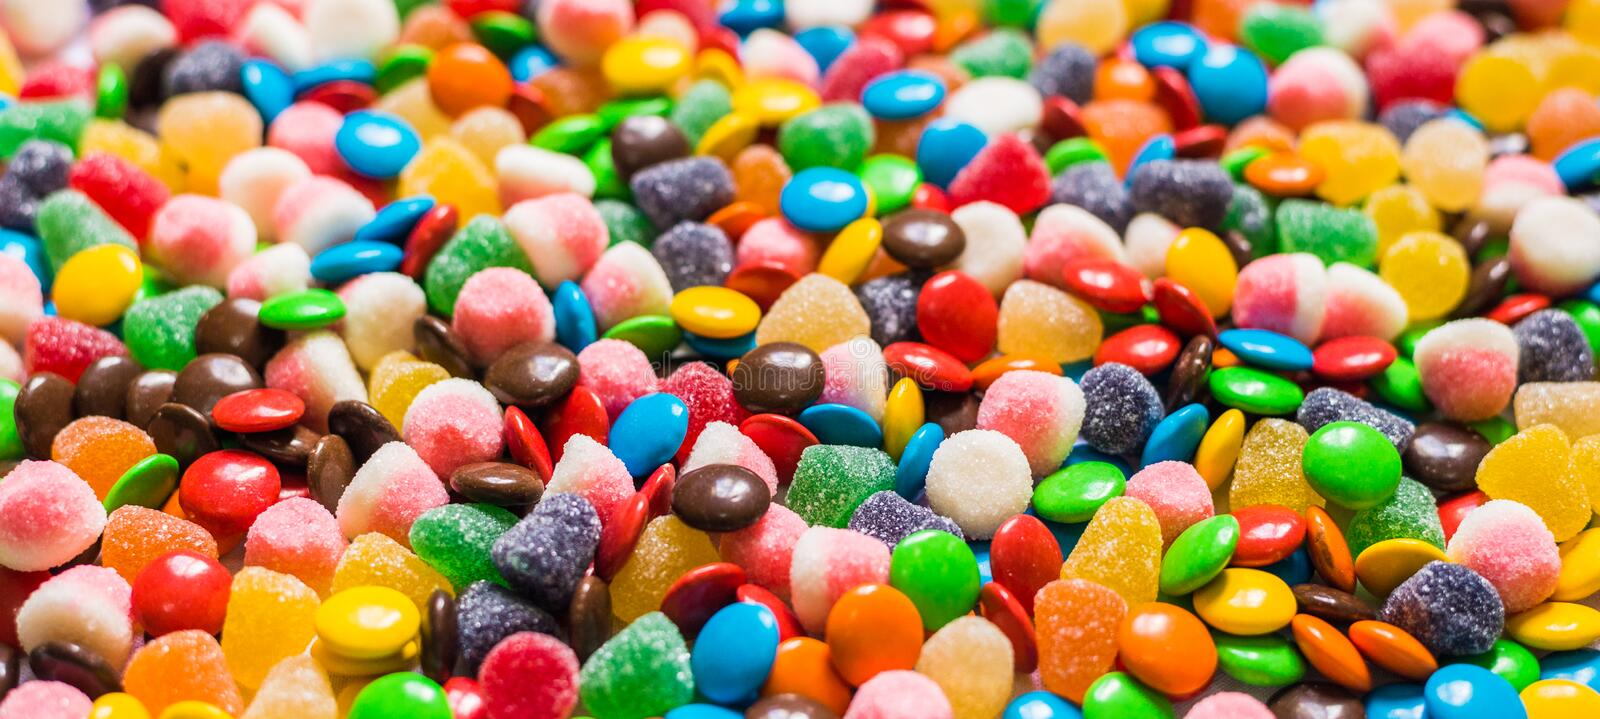 Assortment of sweet dessert colorful gummi jelly and chocolate candy.  stock images